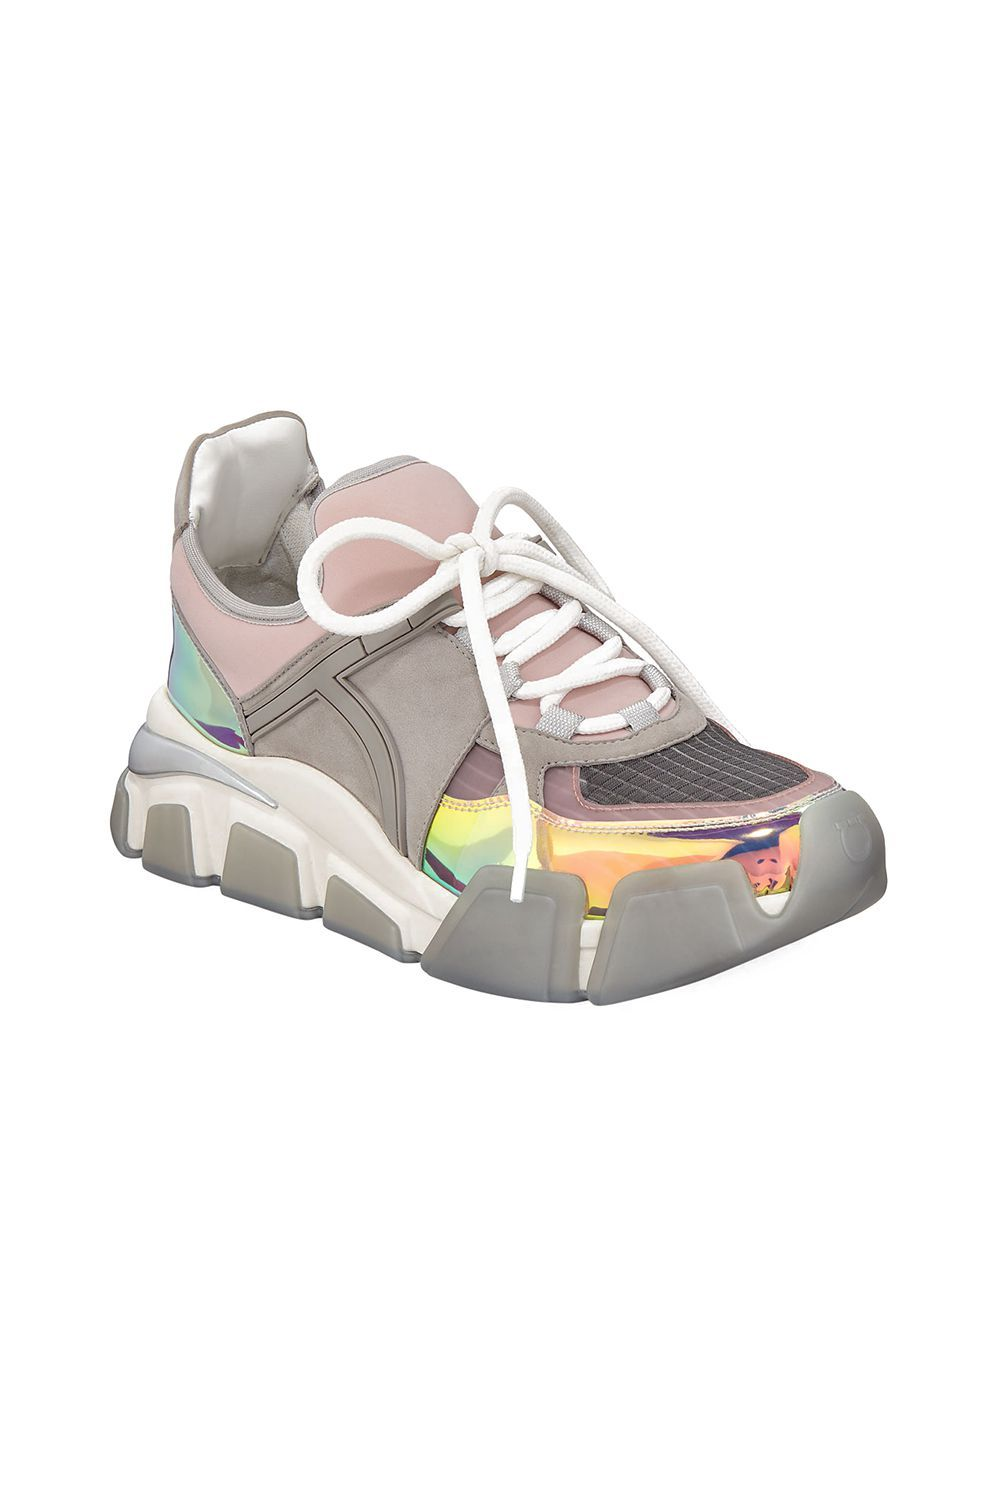 Salvatore Ferragamo Cimbra Lace-Up Dad Sneakers Salvatore Ferragamo bergdorfgoodman.com $795.00 SHOP IT The colors on this Salvatore Ferragamo sneaker almost resembles a watercolor painting. The rubber gray sole, unlike many of the other sneakers on this list, extends from the bottom all the way to the front of the shoe for an enveloping shape.